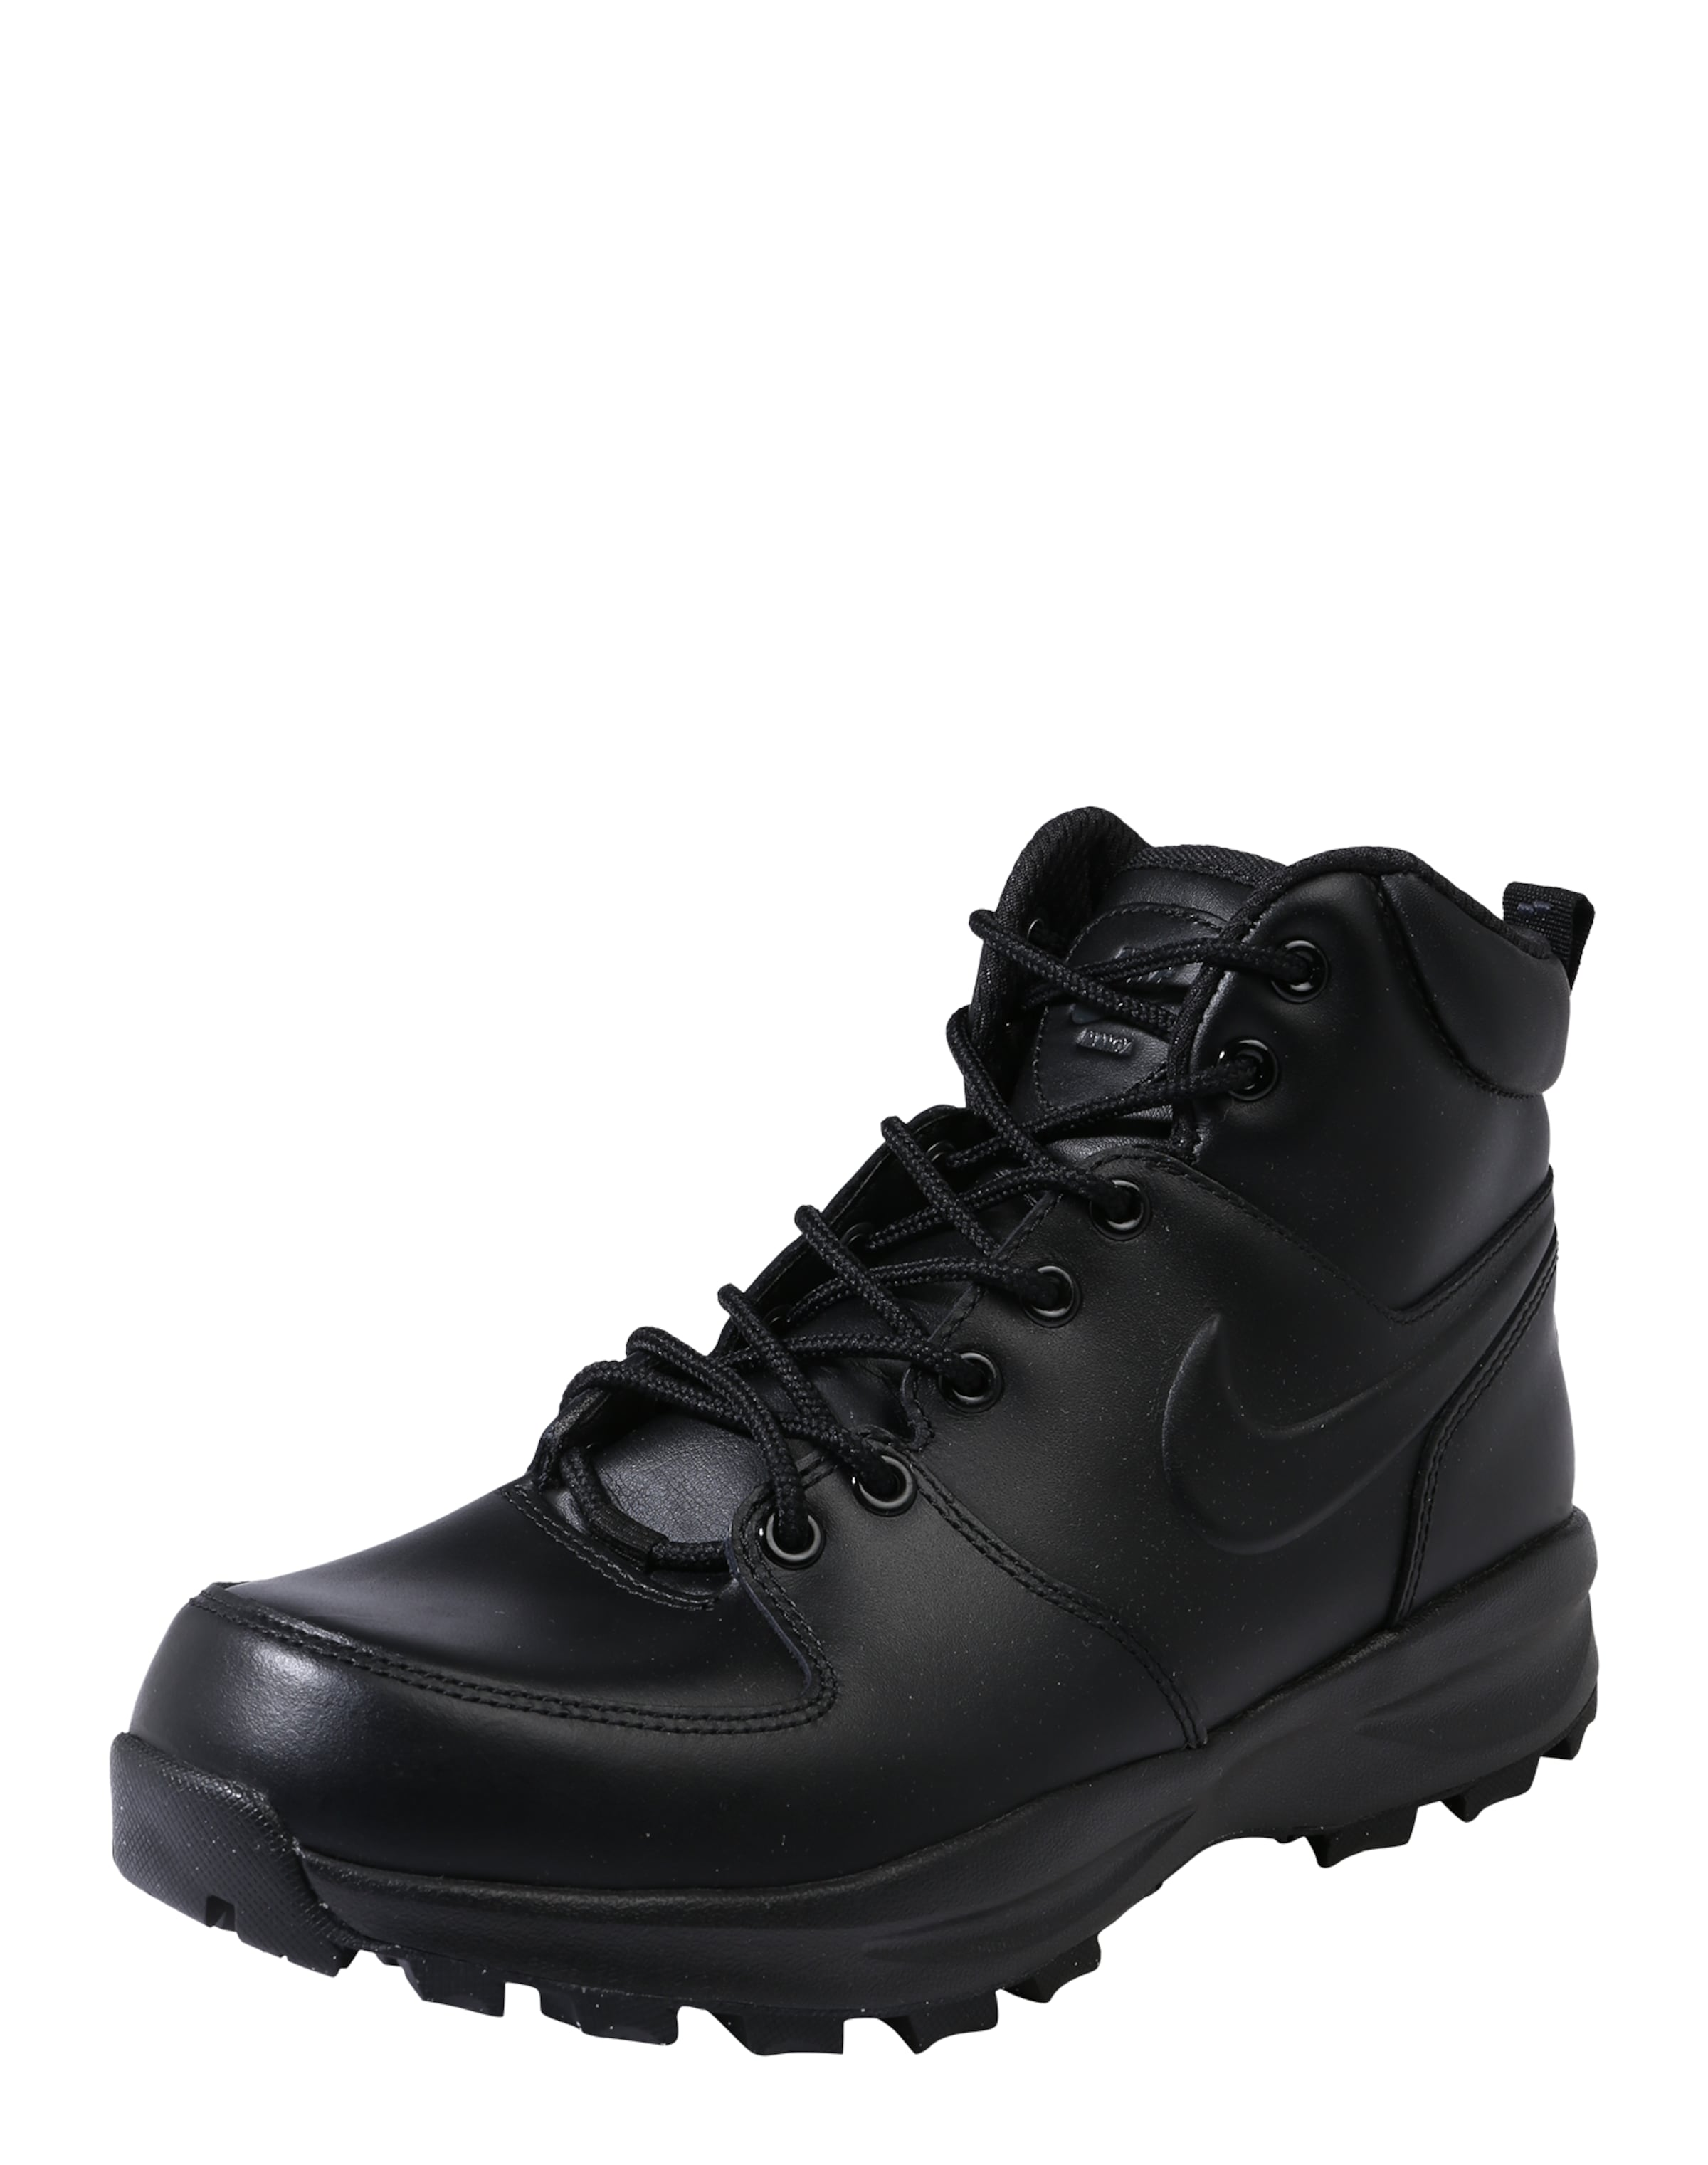 Sportswear Sneaker Nike In Schwarz 'manoa' High Jc1lKTF